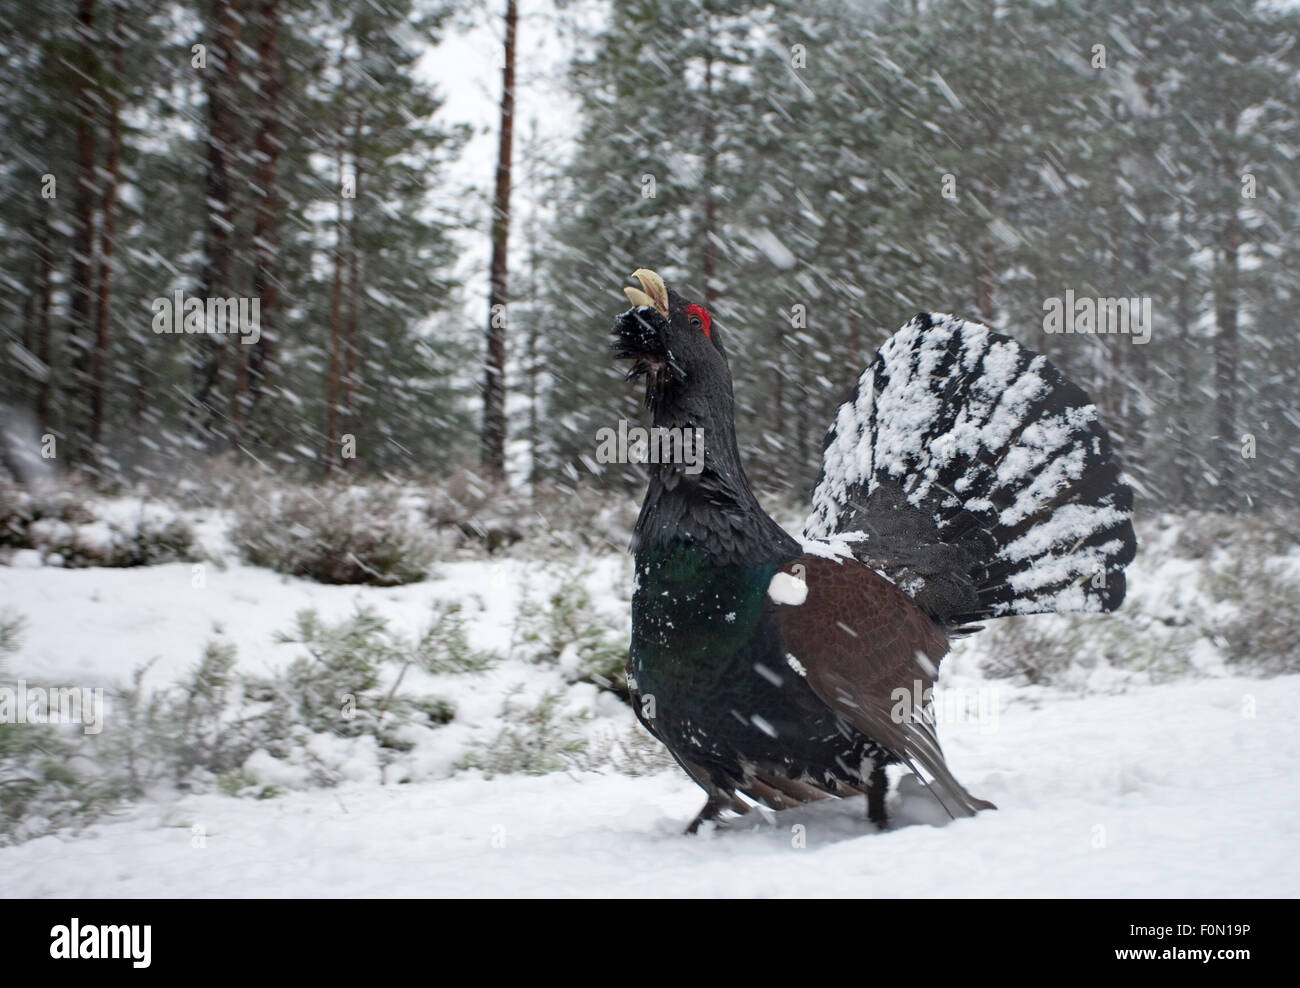 Capercaillie (Tetrao urogallus) male displaying in snow, Cairngorms NP, Scotland, February 2009 - Stock Image